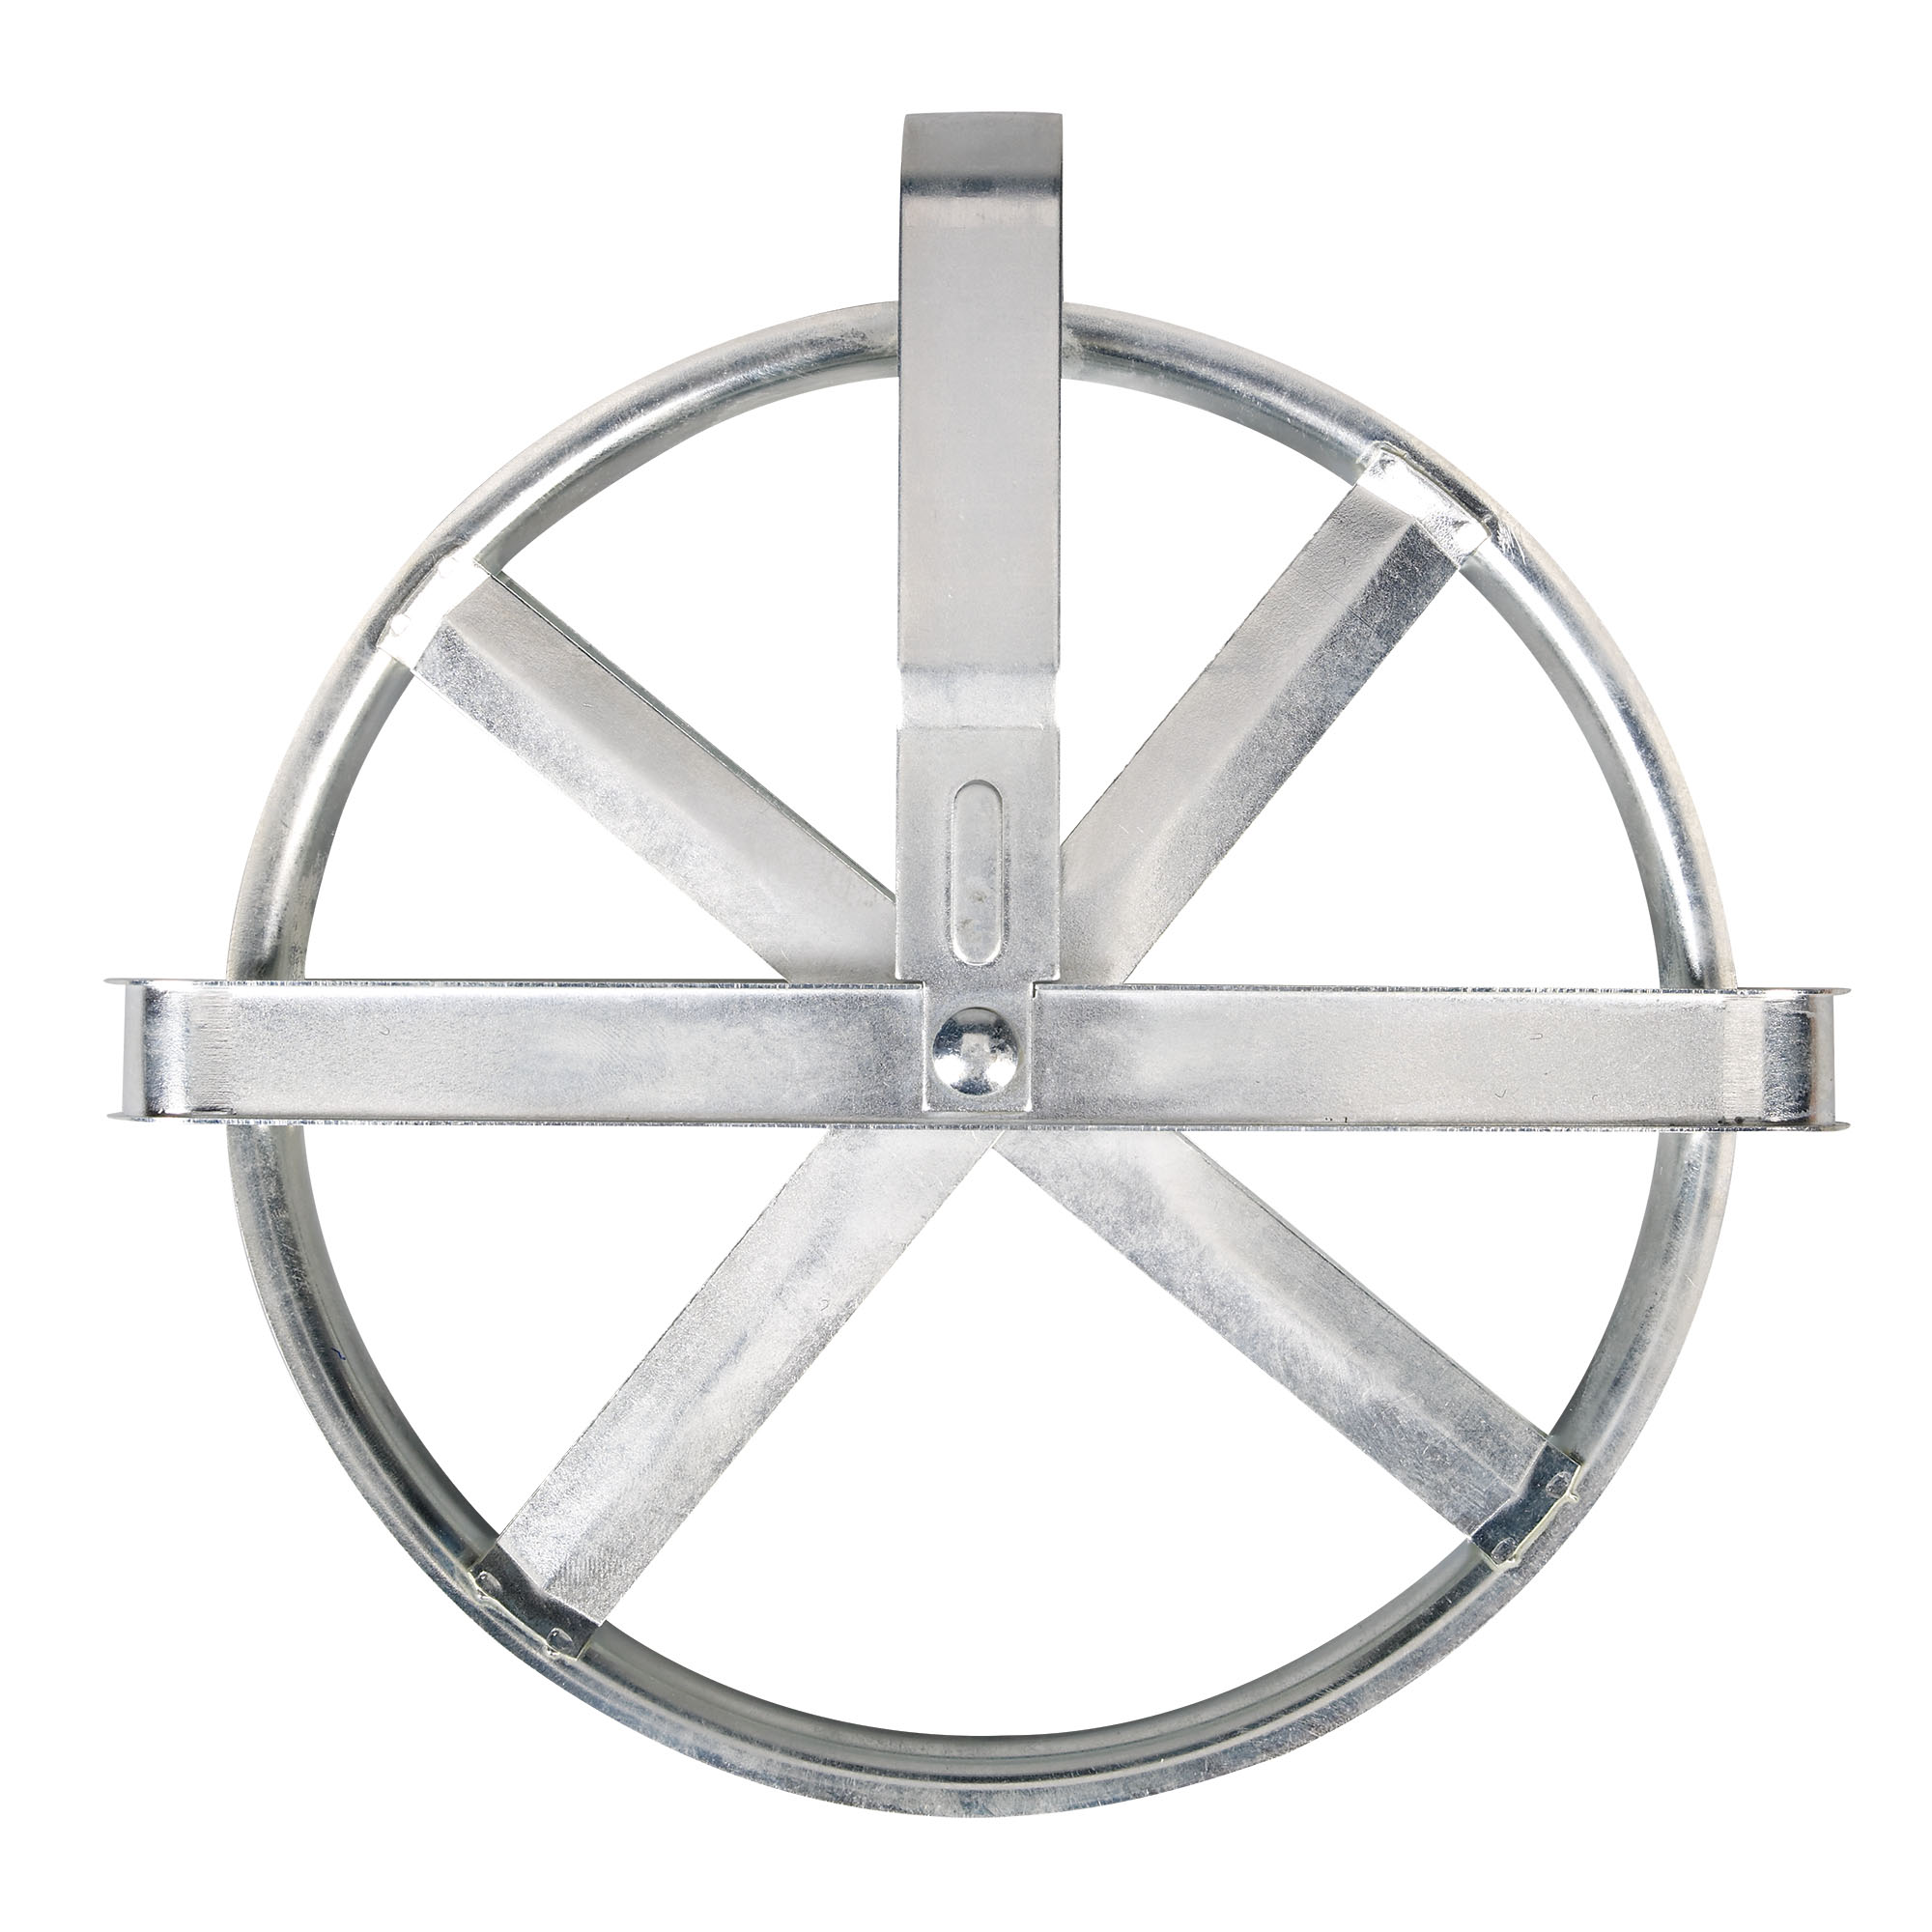 "7"" Heavy Duty Clothesline Pulley"